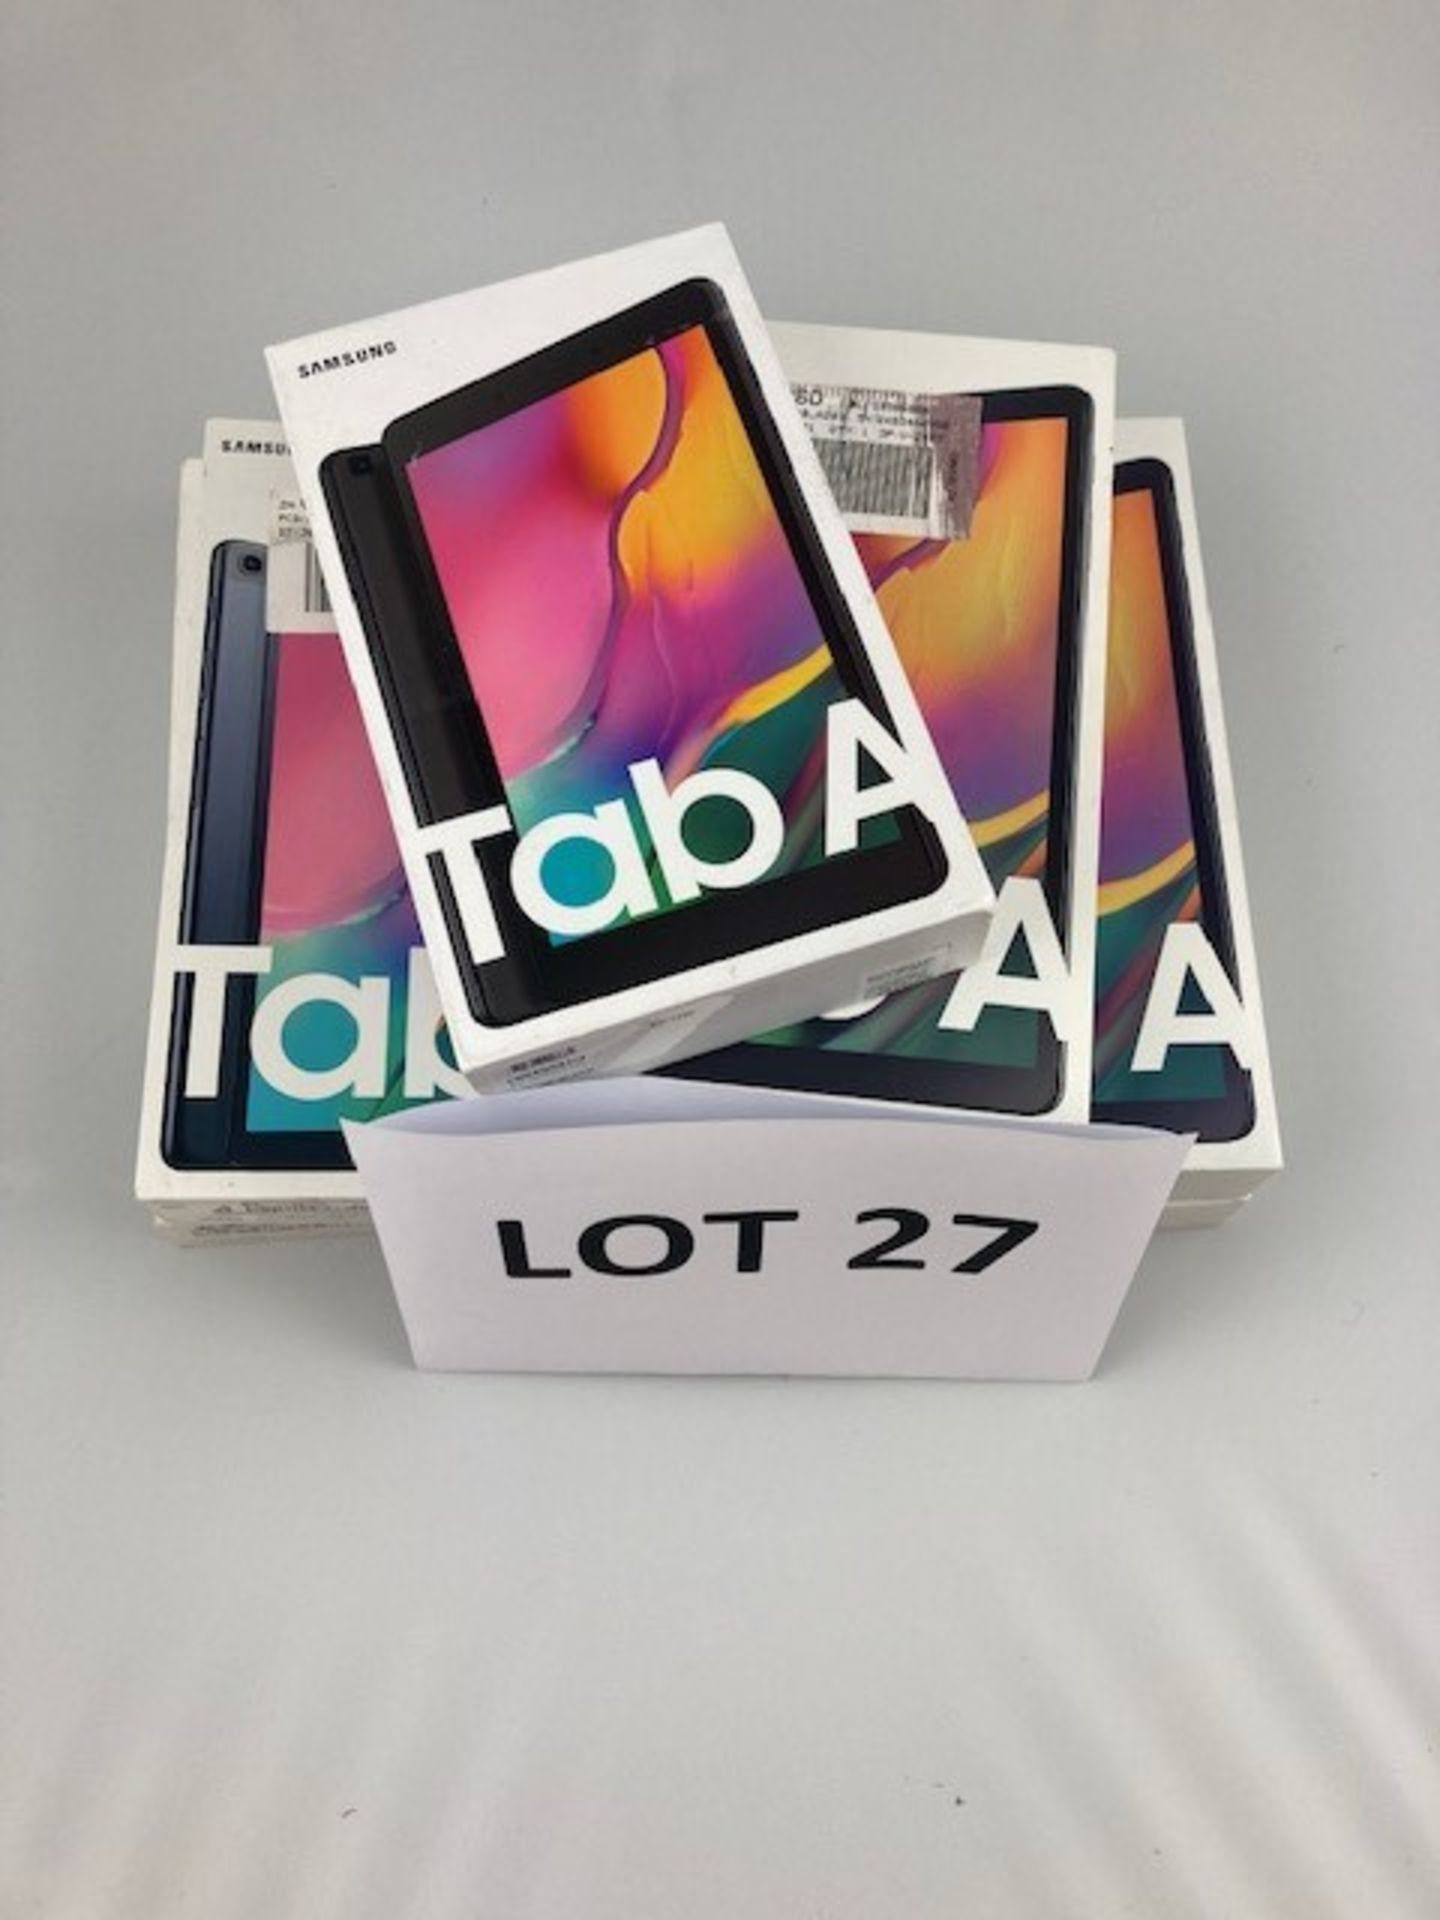 Box of 6 SAMSUNG Tablets. Total Latest selling price £1,004* - Image 5 of 5